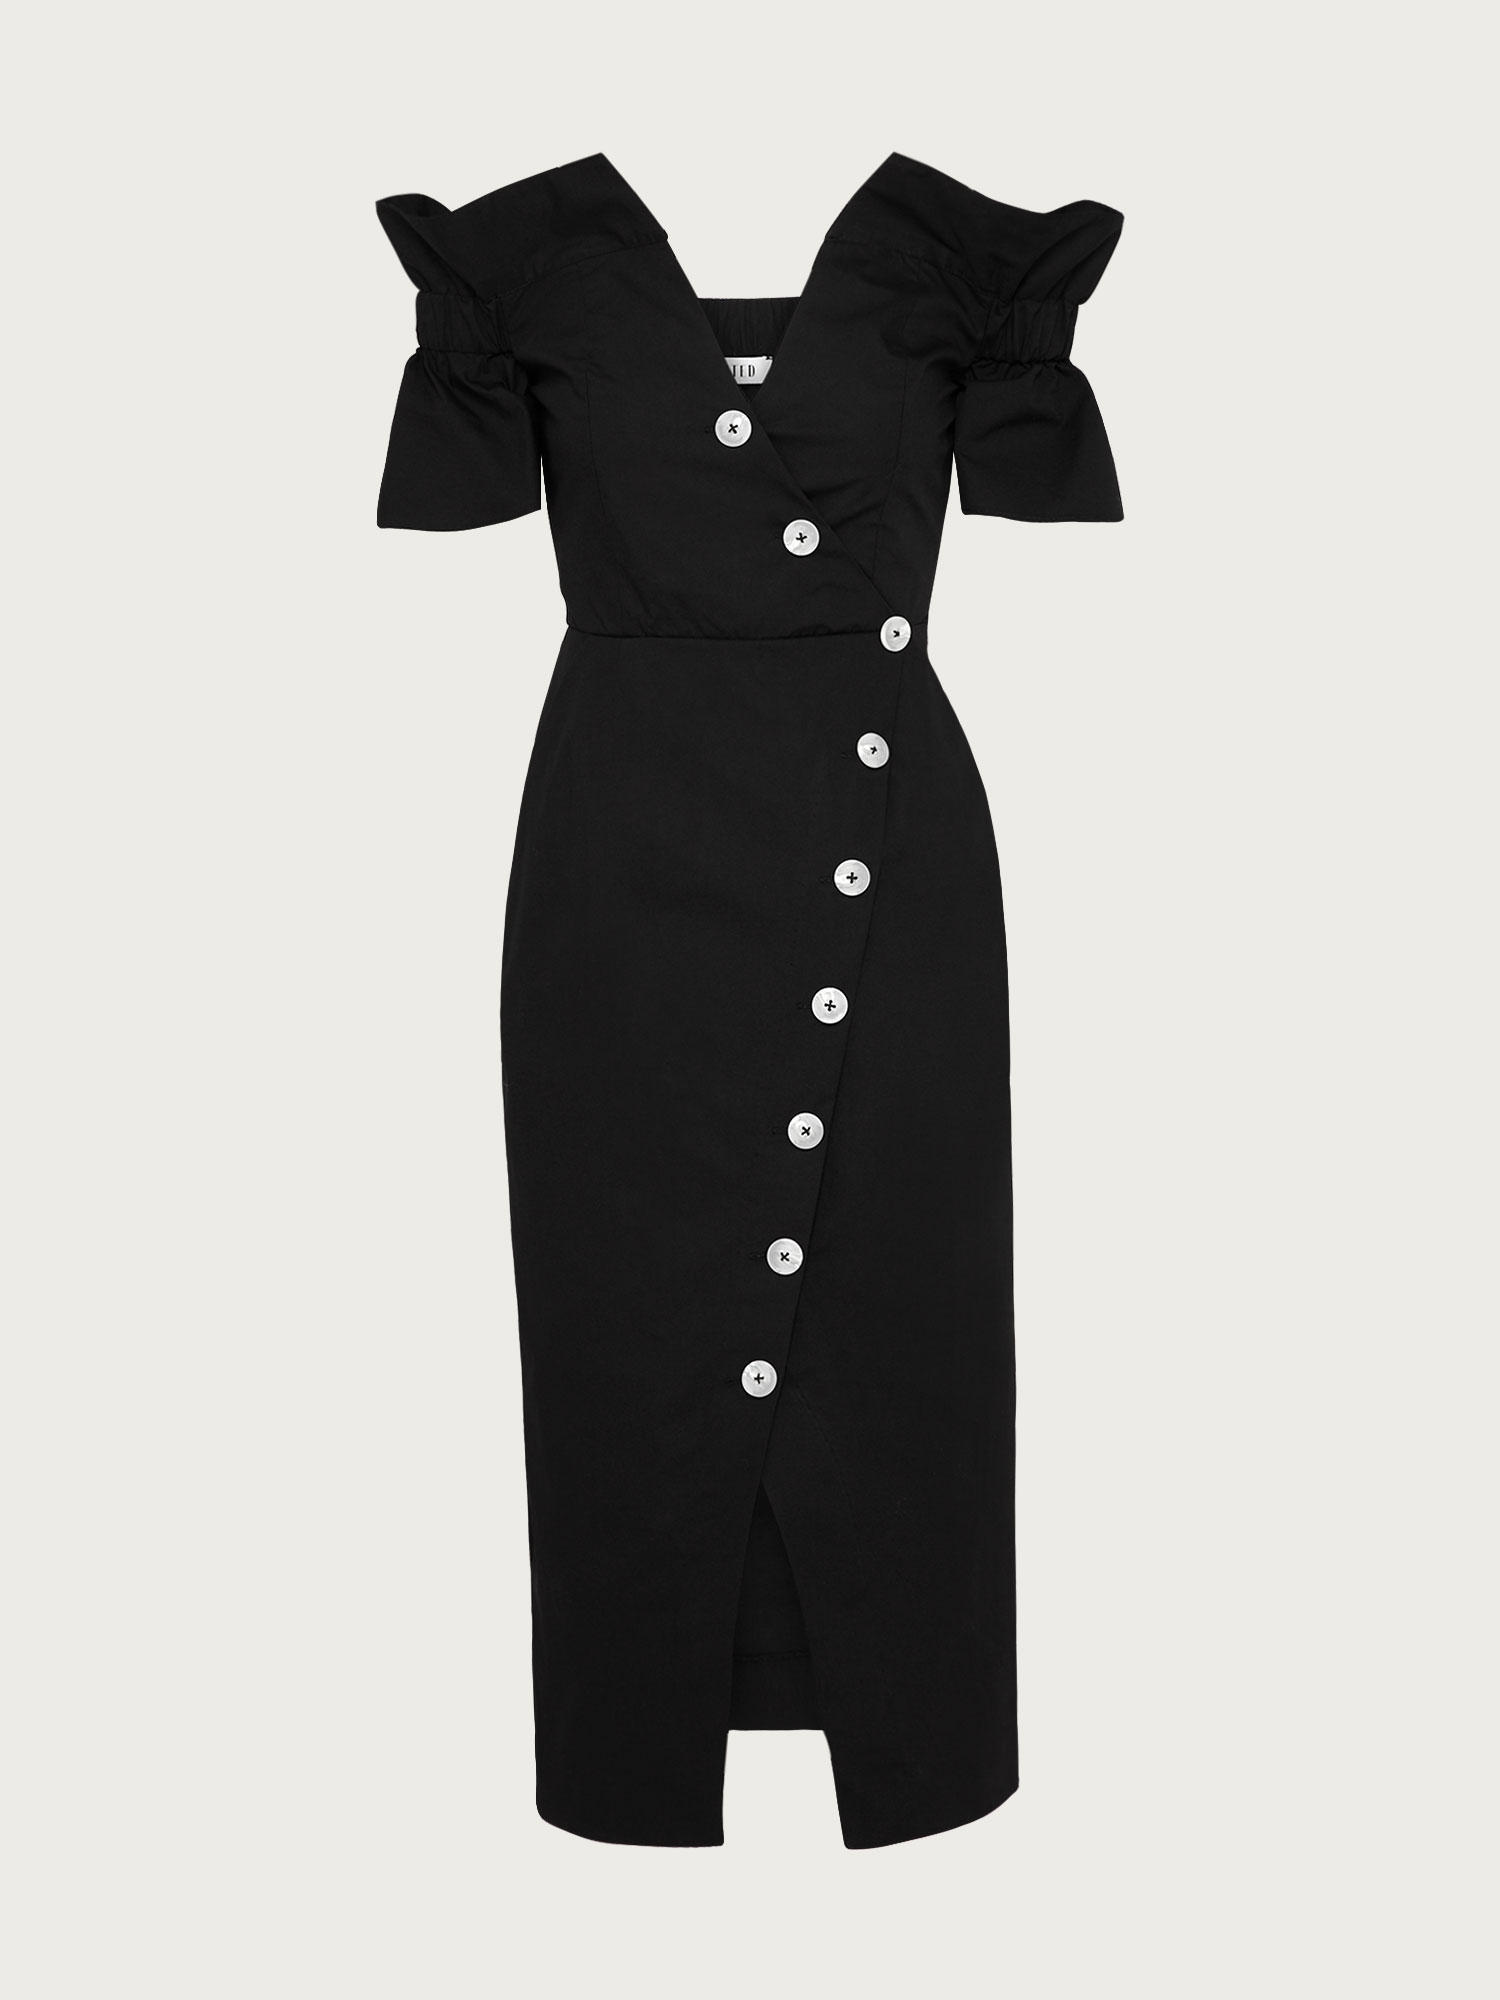 Buttom Down Dress von Edited